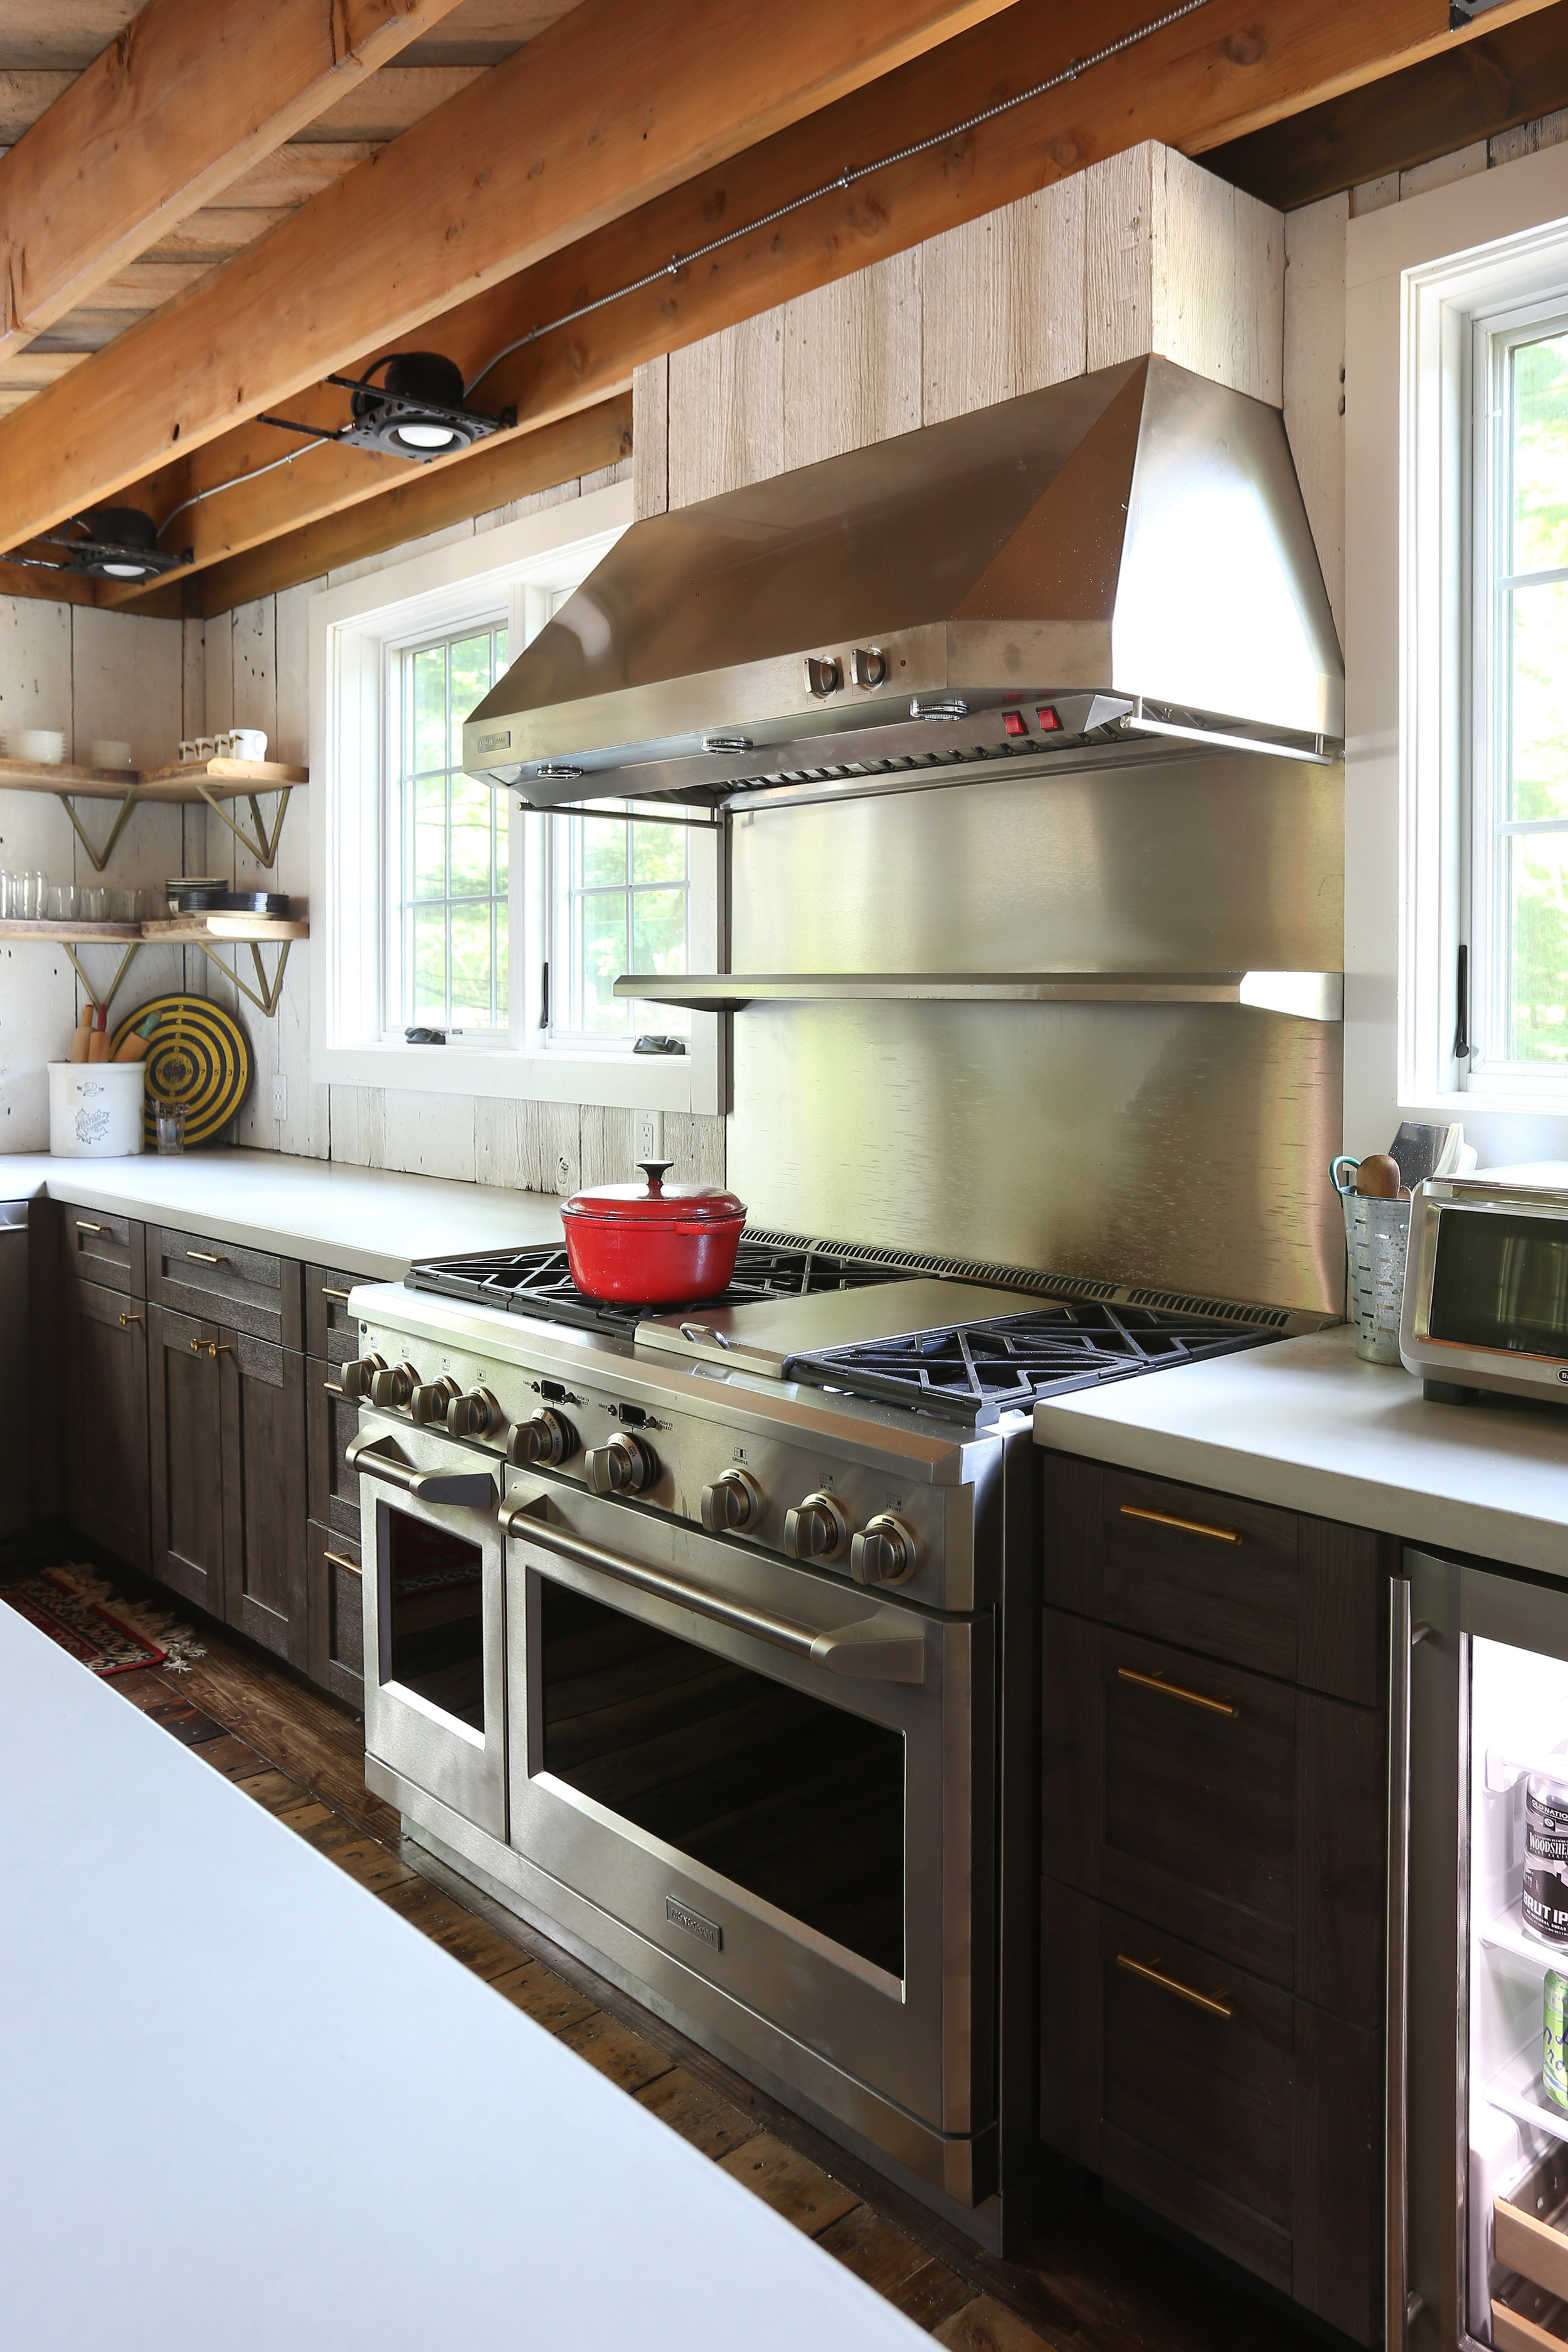 """Monogram 48"""" Stove - We are big fans of entertaining and have everything we need to host large gatherings. With the help of our 48"""" Monogram stove equipped with a top shelf heat lamp and double oven feature, we can keep everything warm and tasting fresh."""